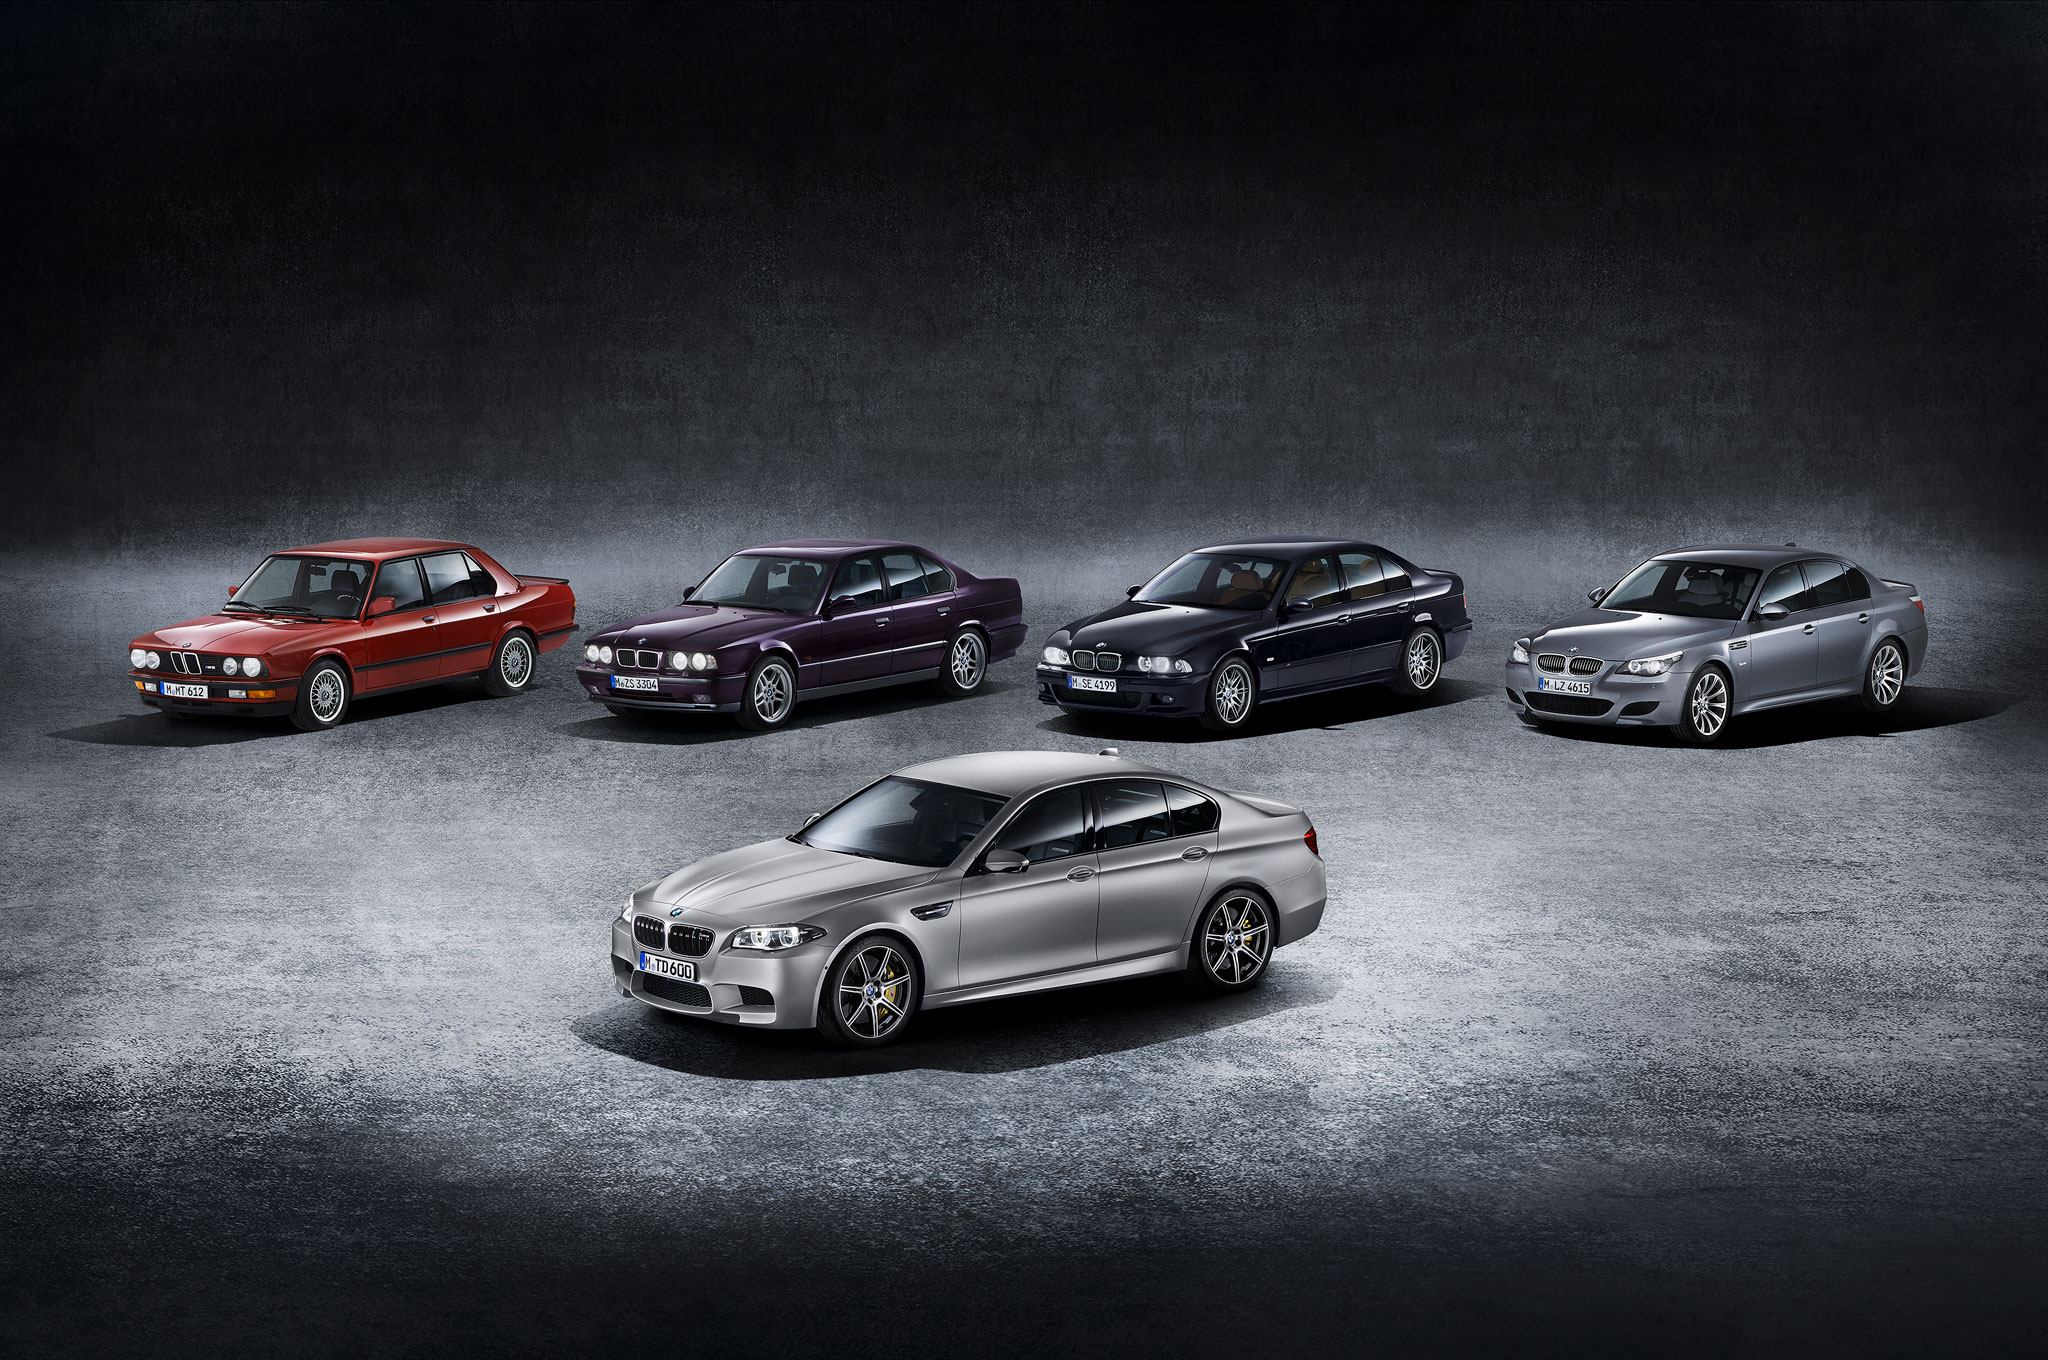 What's your favorite BMW M5?